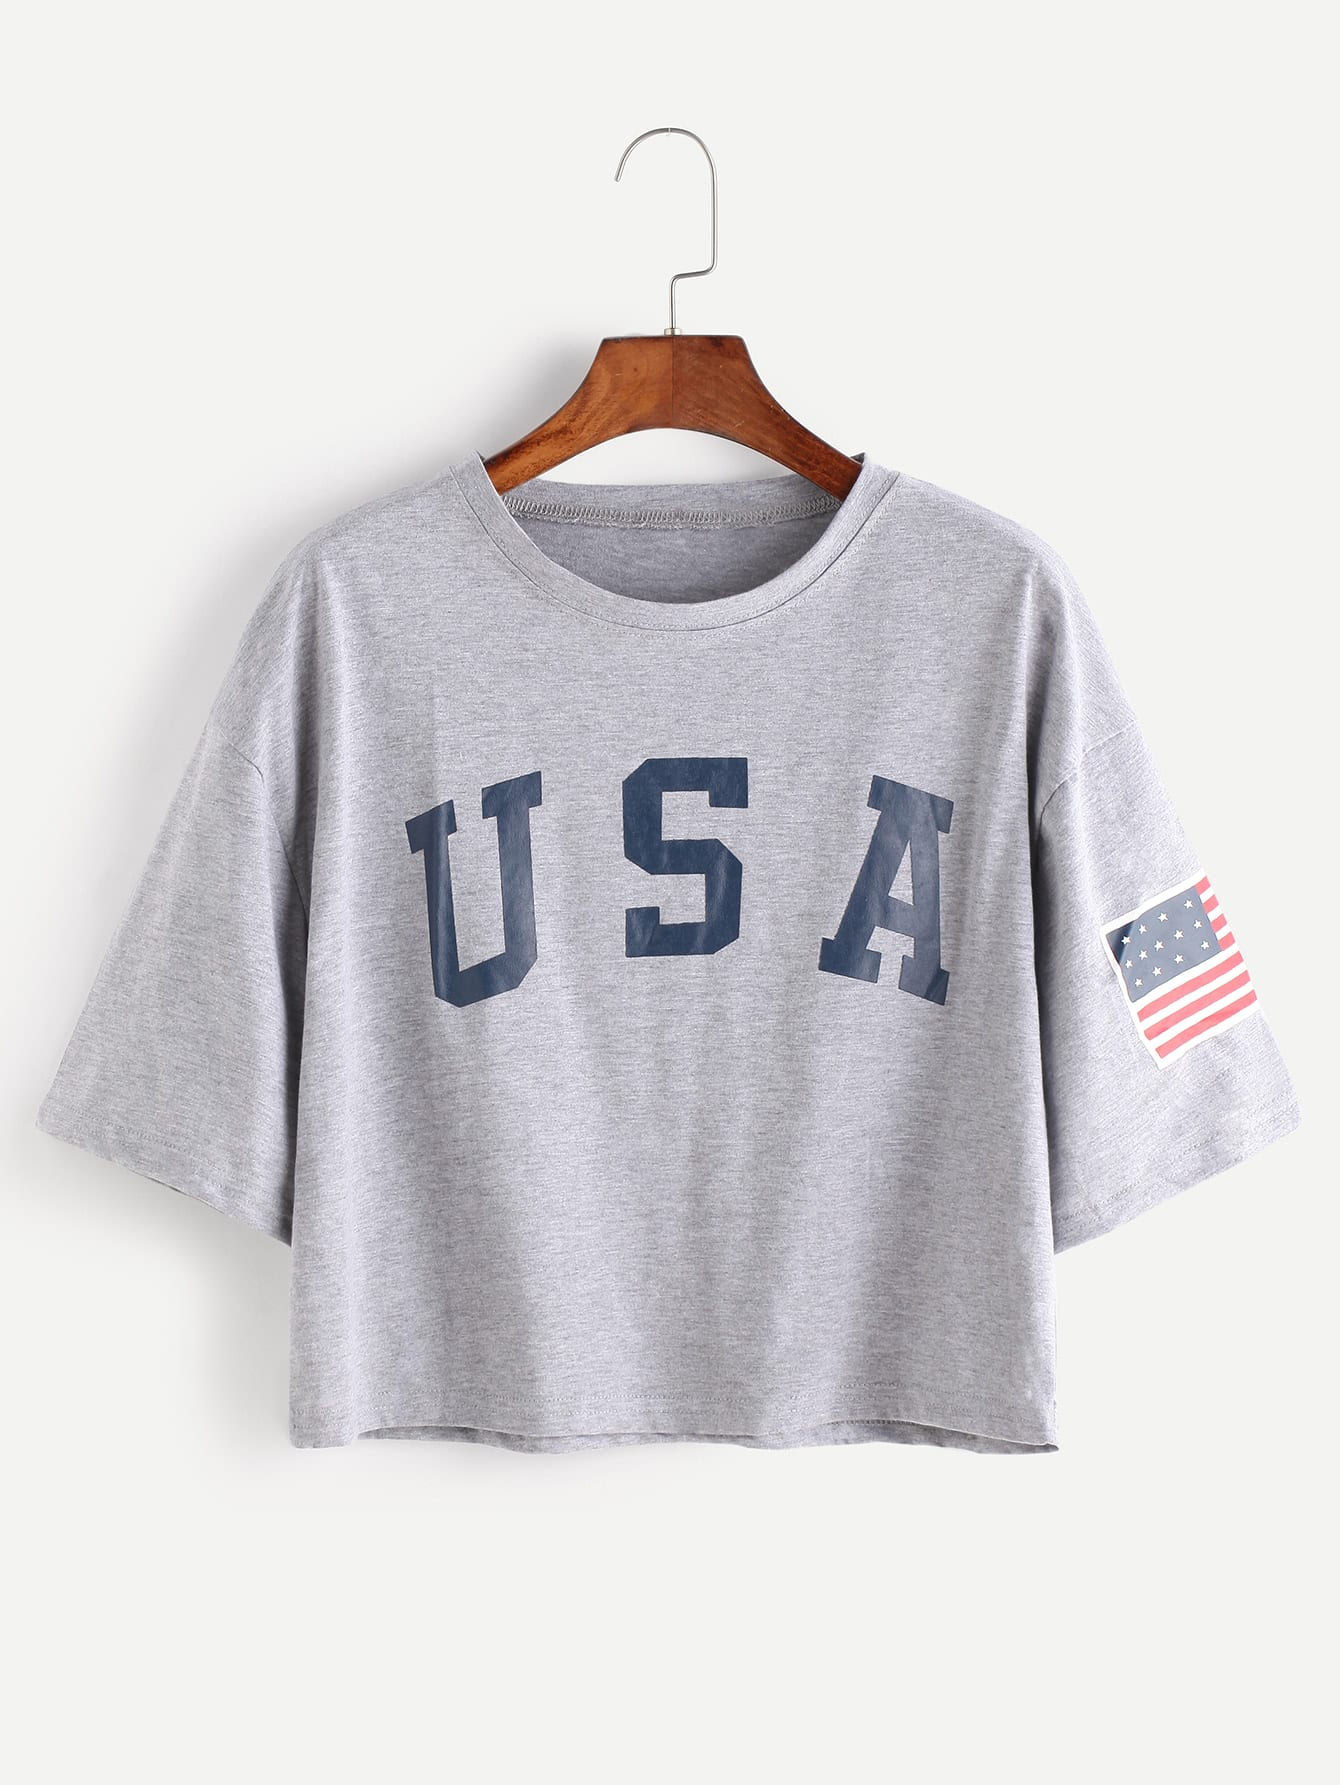 American Flag Letter Print Drop Shoulder Tee two tone drop shoulder tee